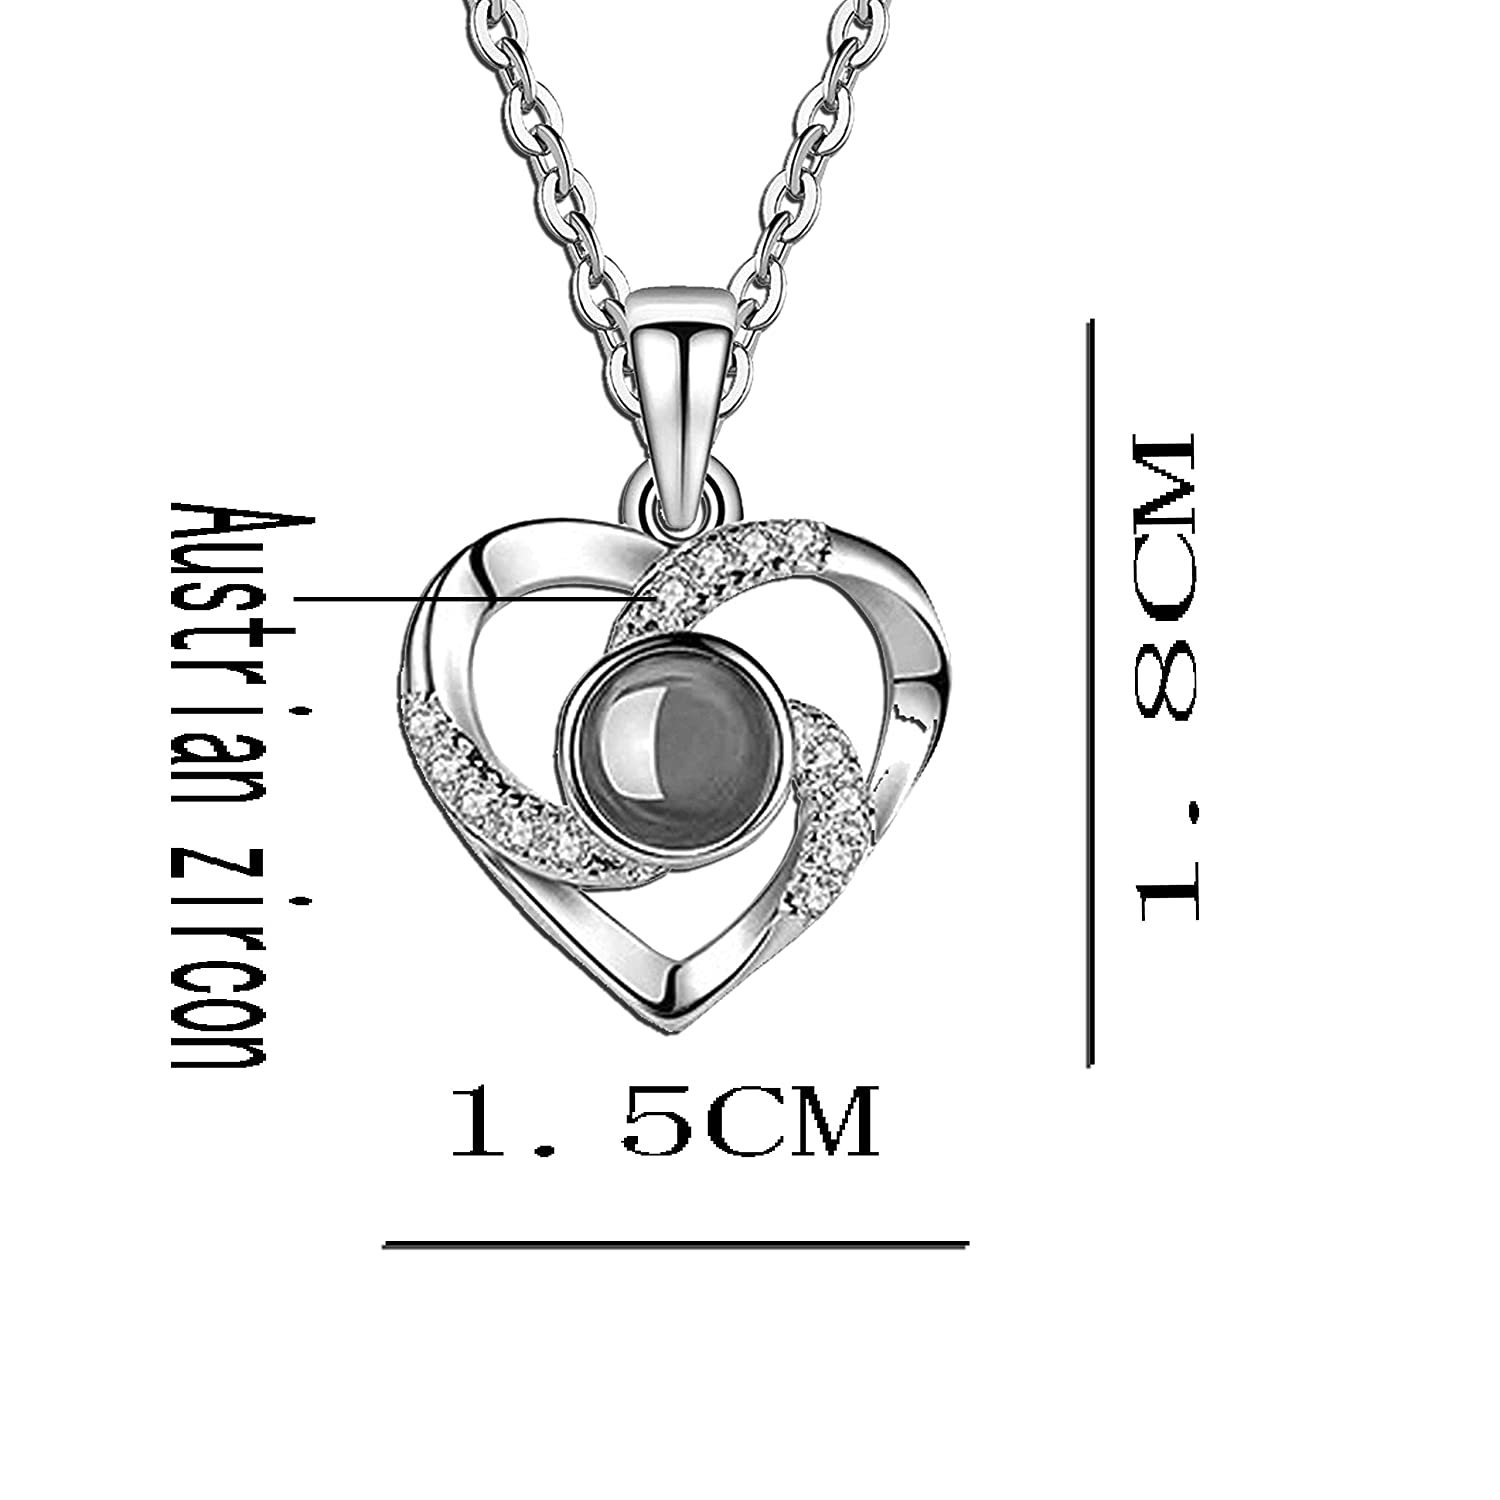 Hantaostyle I Love You Necklace 925 Silver 100 Languages Projection on Round Onyx Pendant Loving Memory Collarbone Necklace